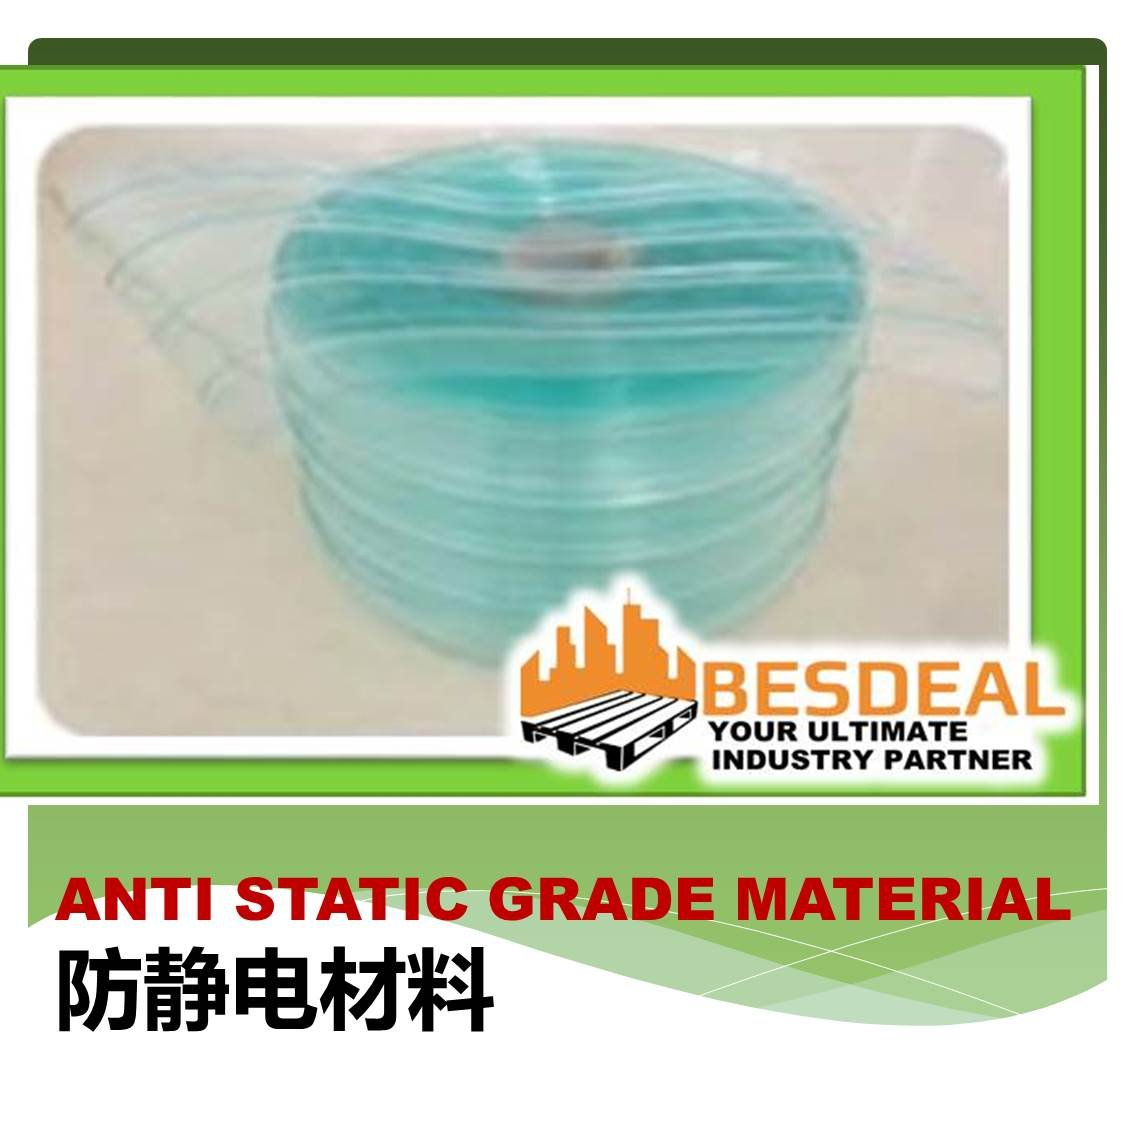 ANTI STATIC GRADE MATERIAL For Sales Now!!